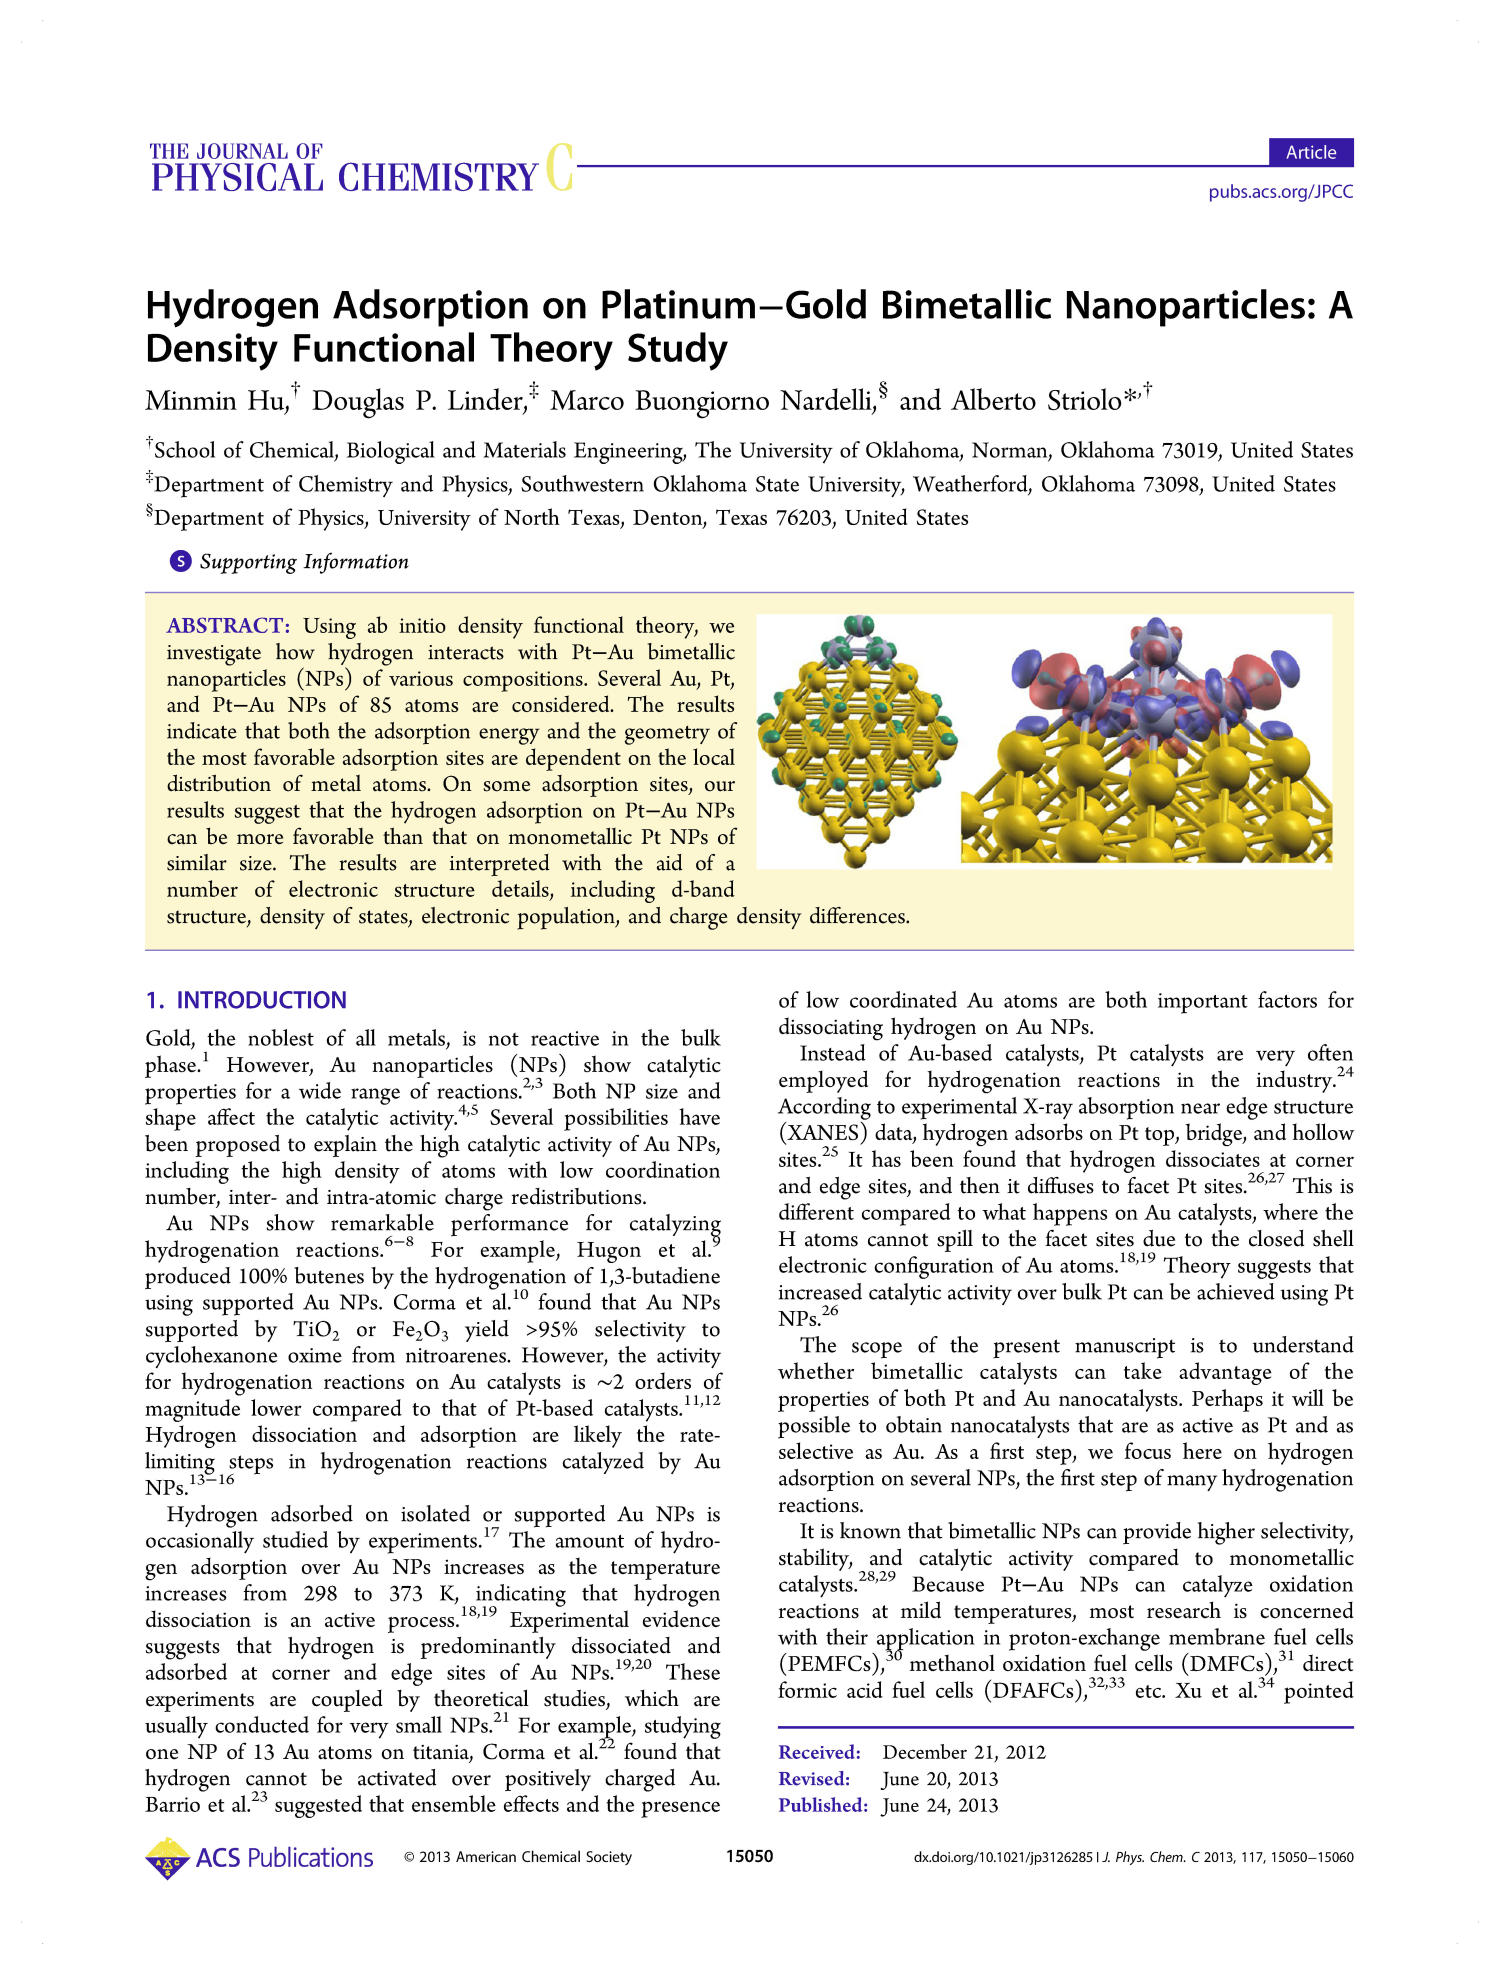 Hydrogen Adsorption on Platinum-Gold Bimetallic Nanoparticles: A Density Functional Theory Study                                                                                                      15050